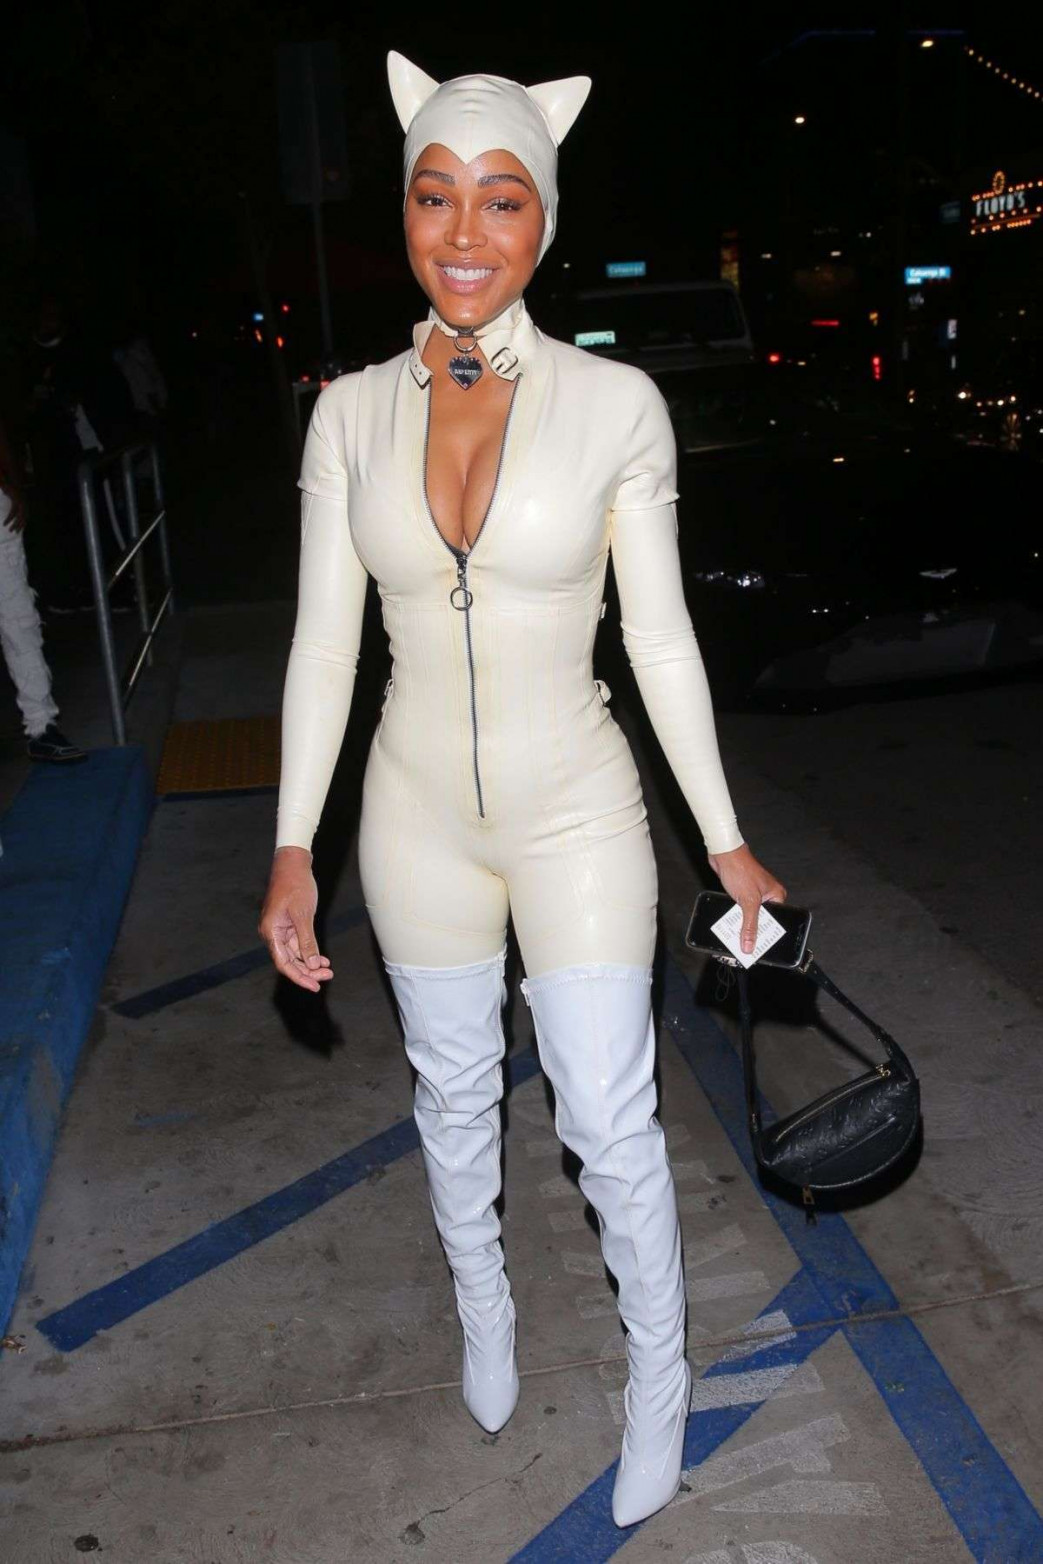 Meagan-Good-Busty-In-White-Catsuit-For-Halloween-2020-8.jpg